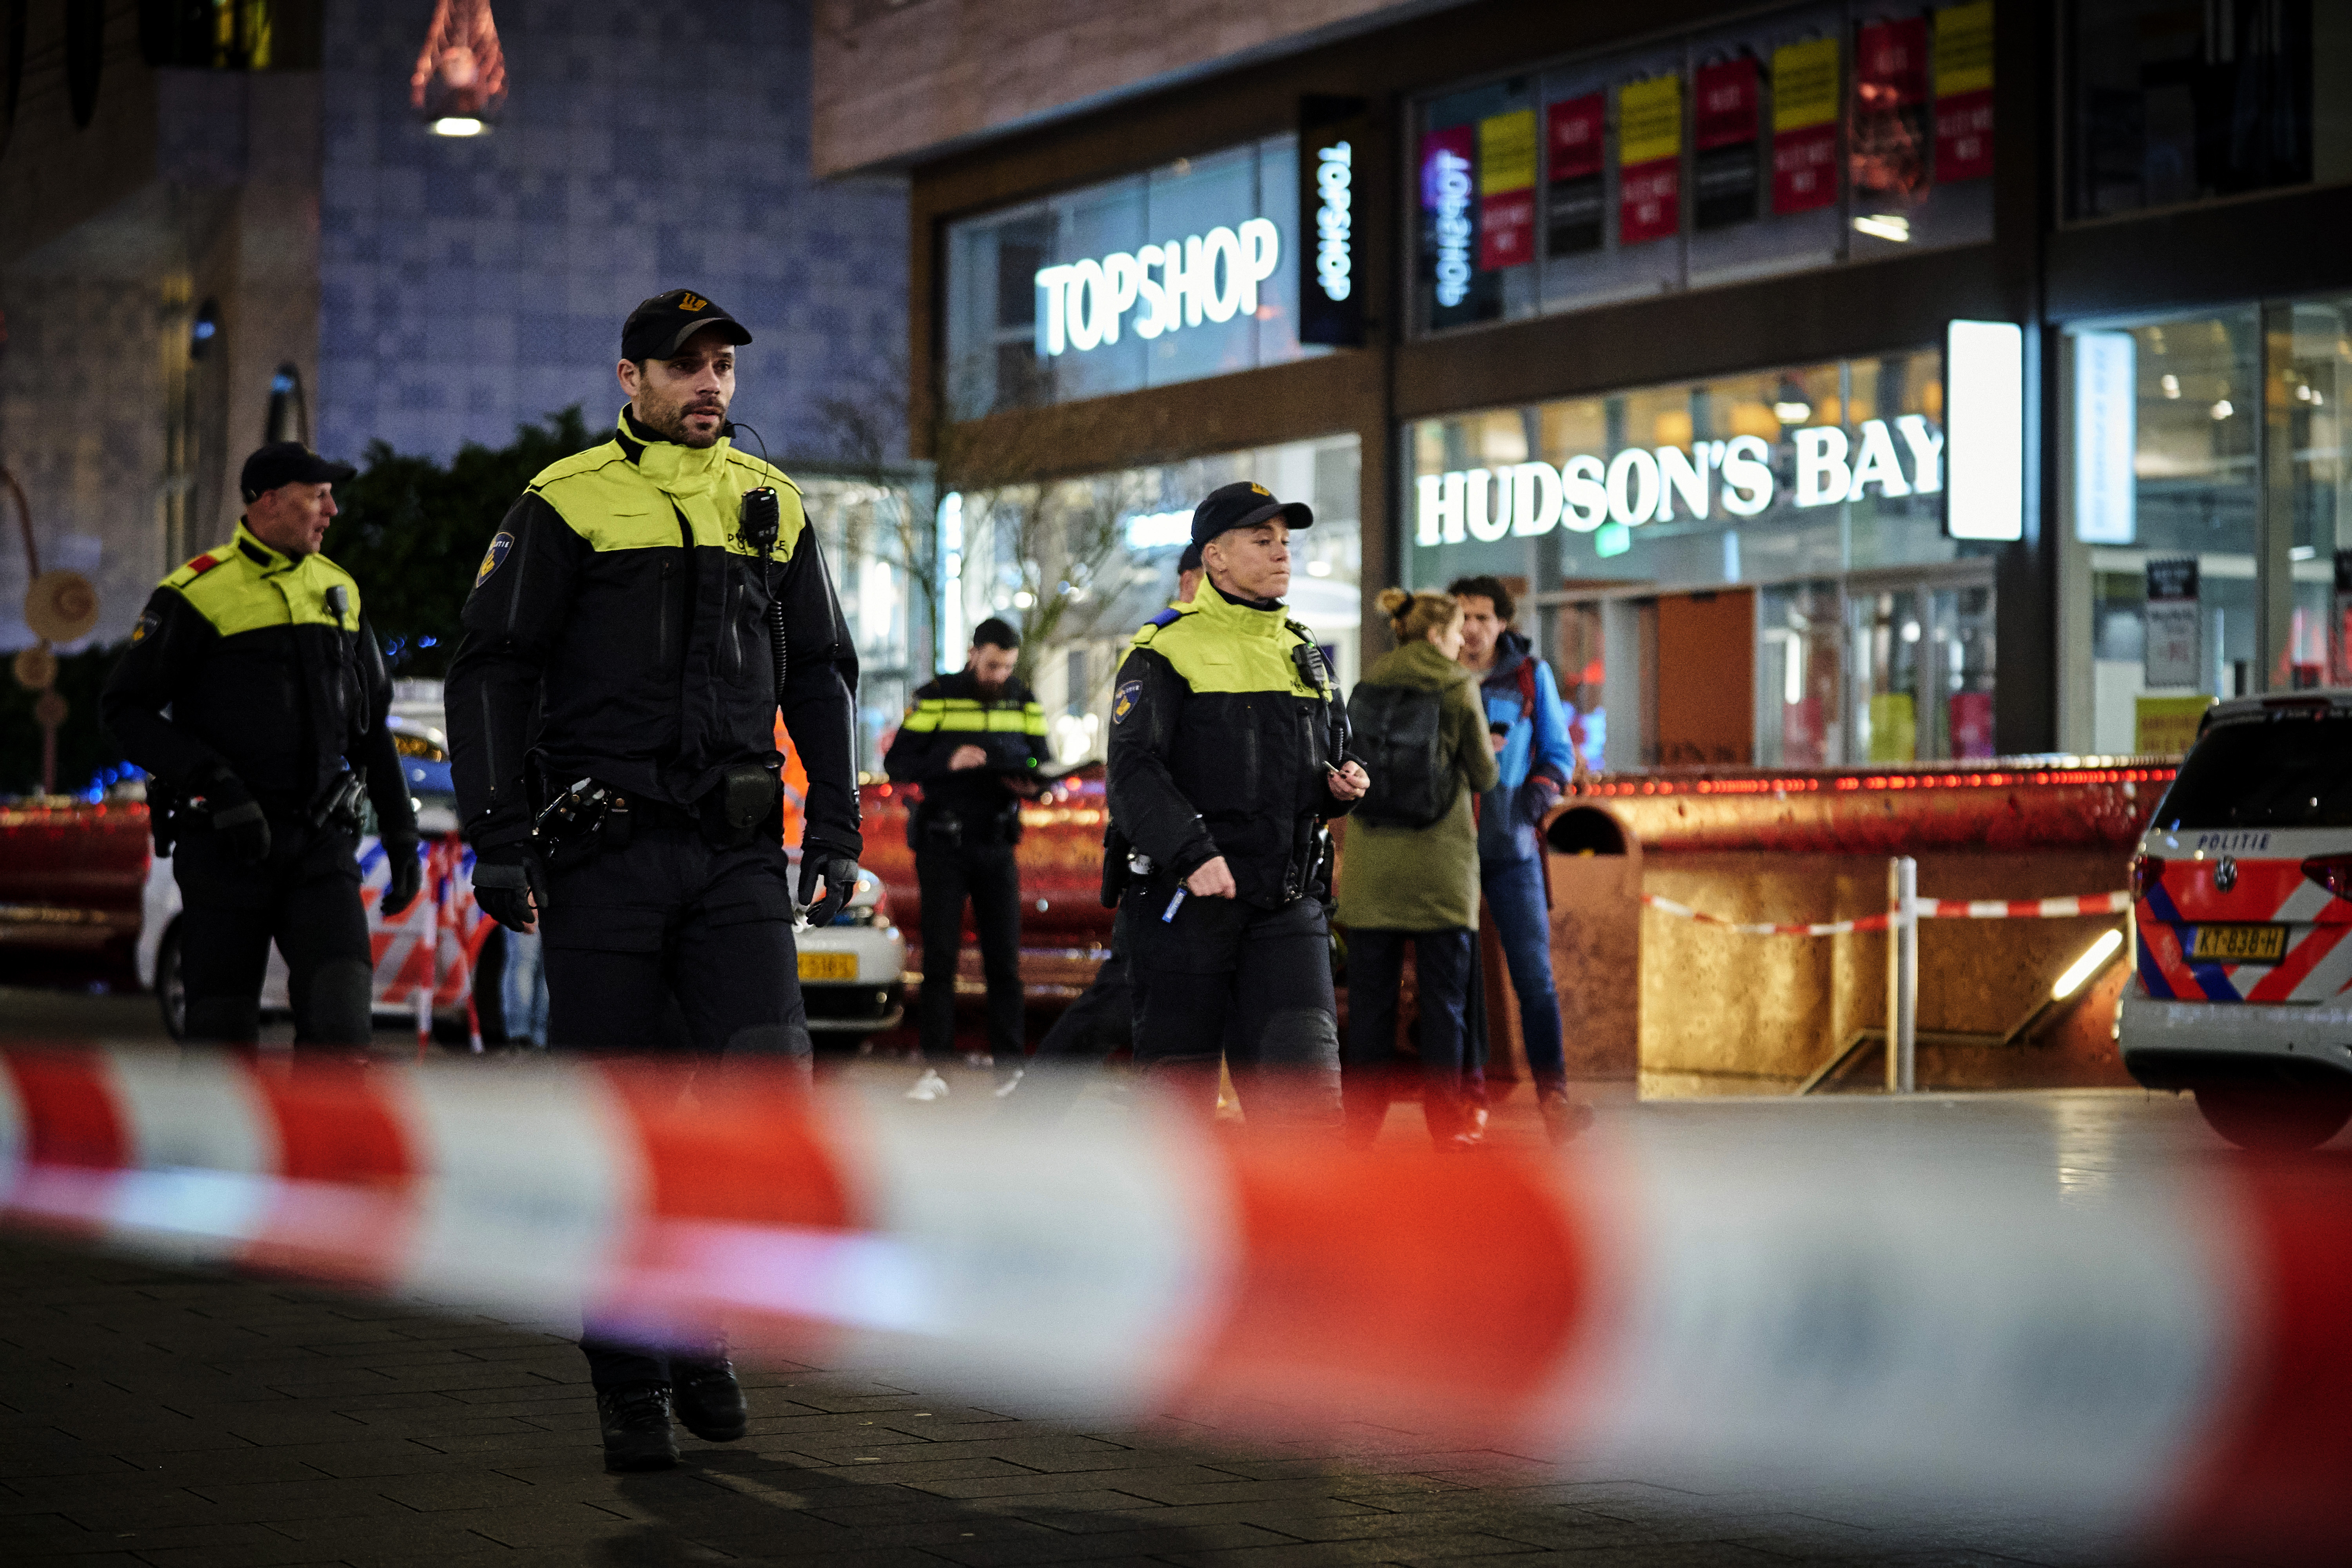 Dutch police: 3 people wounded in Hague stabbing